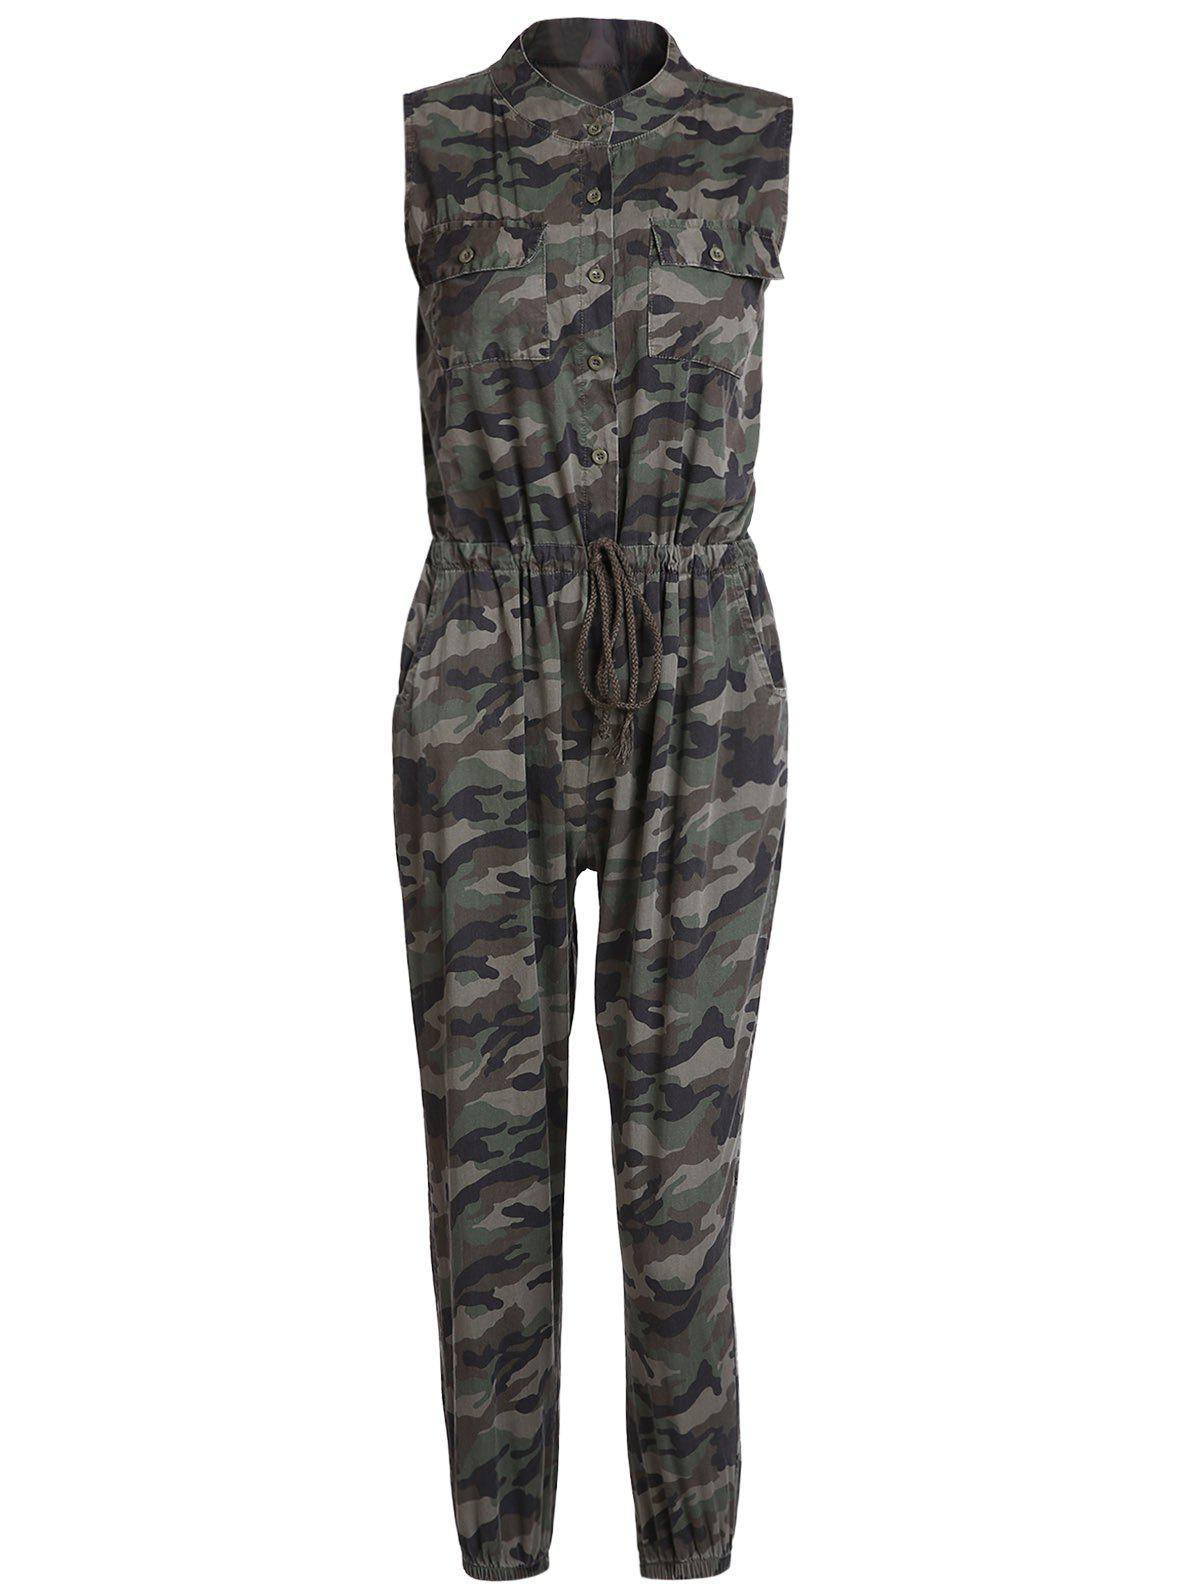 Chic Camouflage Printed V-Neck Sleeveless Waist Drawstring Jogger Jumpsuit For Women